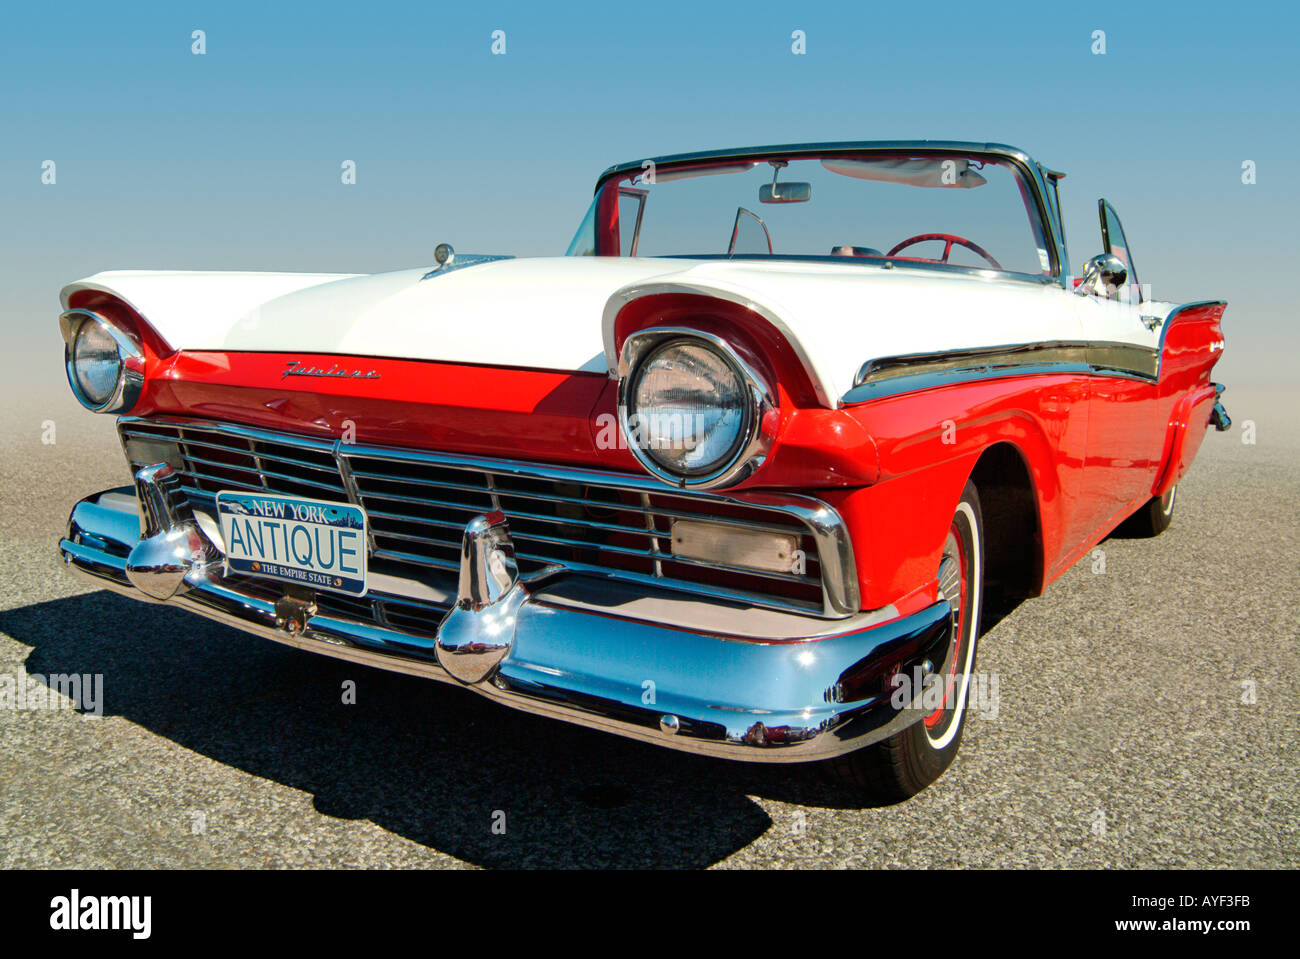 A red and white 57 Ford Fairlane Original license plate number changed to ANTIQUE by the photographer - Stock Image